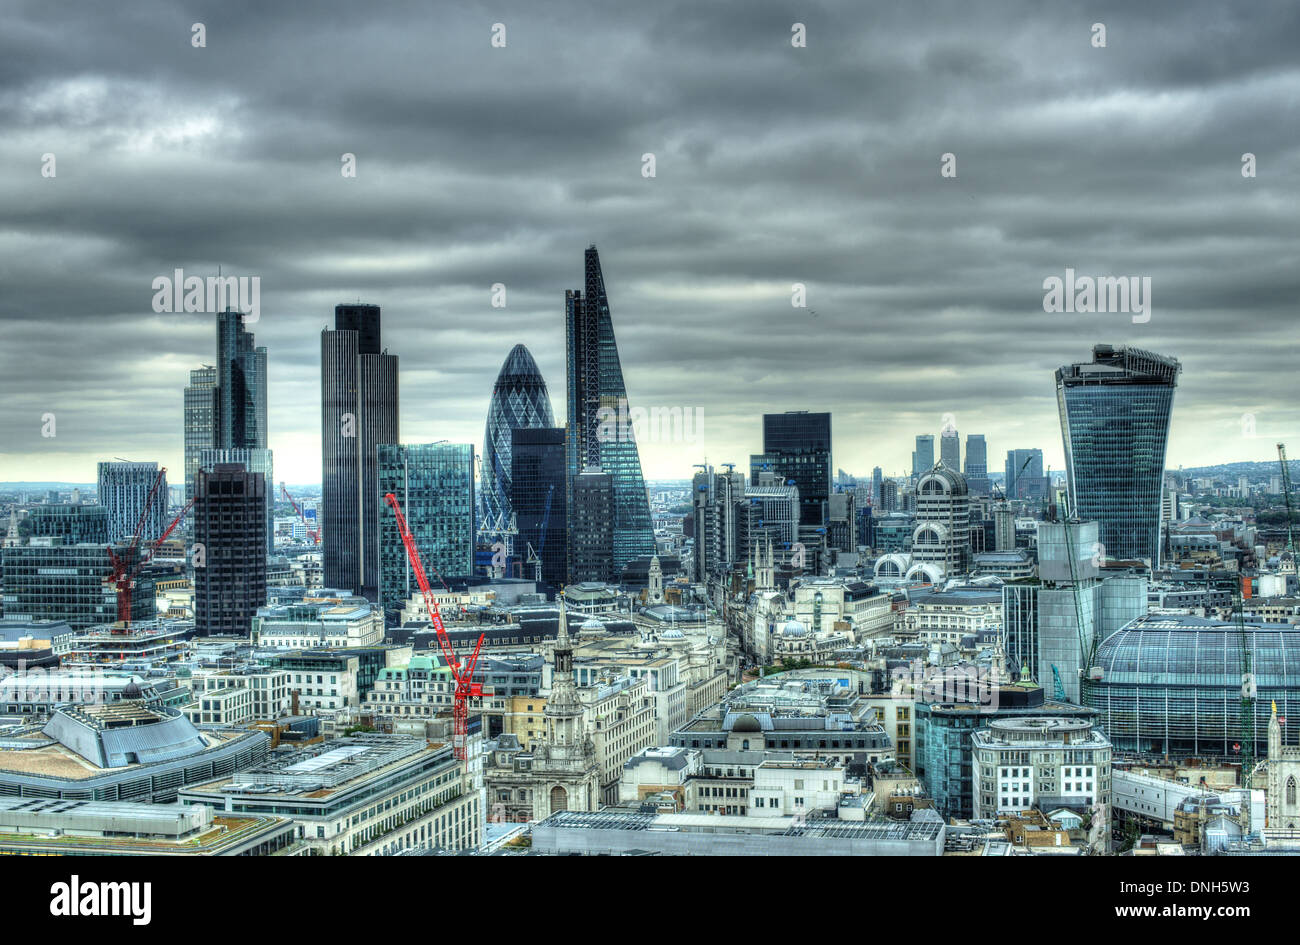 A view of City of London  City of London skyline  skyscrapers city of london - Stock Image